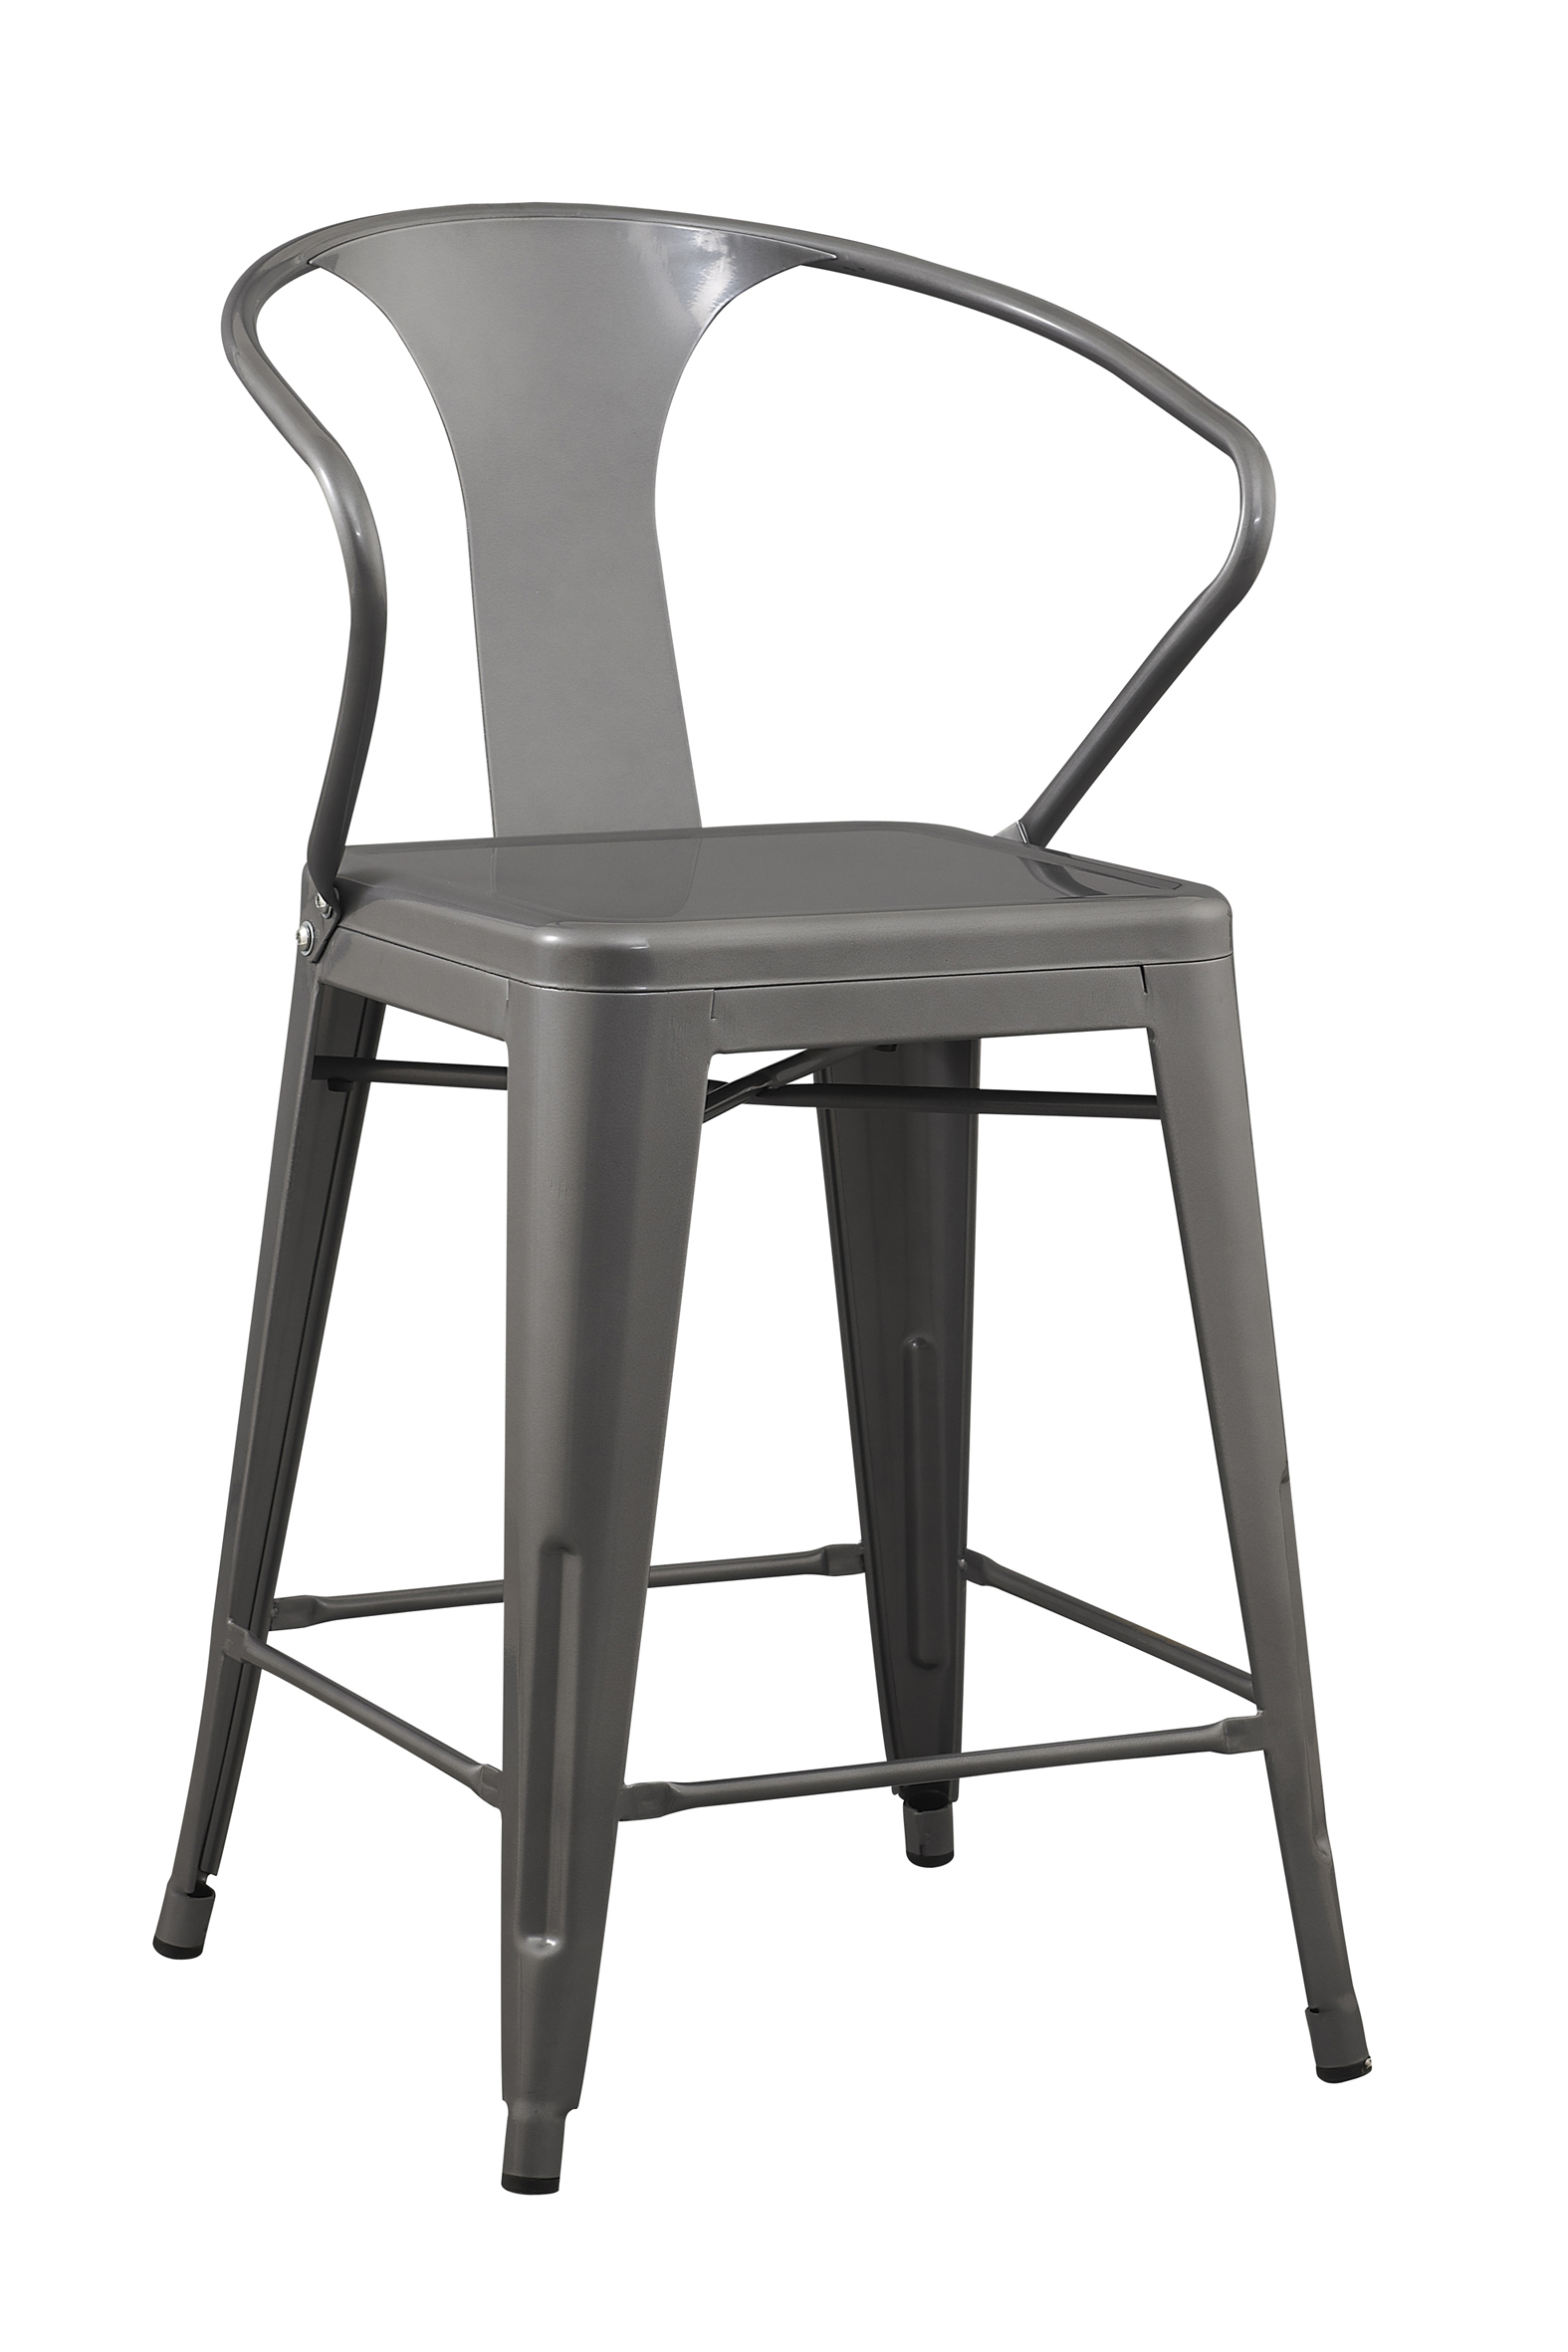 24 inch Solid Steel Stacking Industrial Silver Tabouret  : AM5009 24S 2 from www.richbattery.com size 1575 x 2362 jpeg 724kB